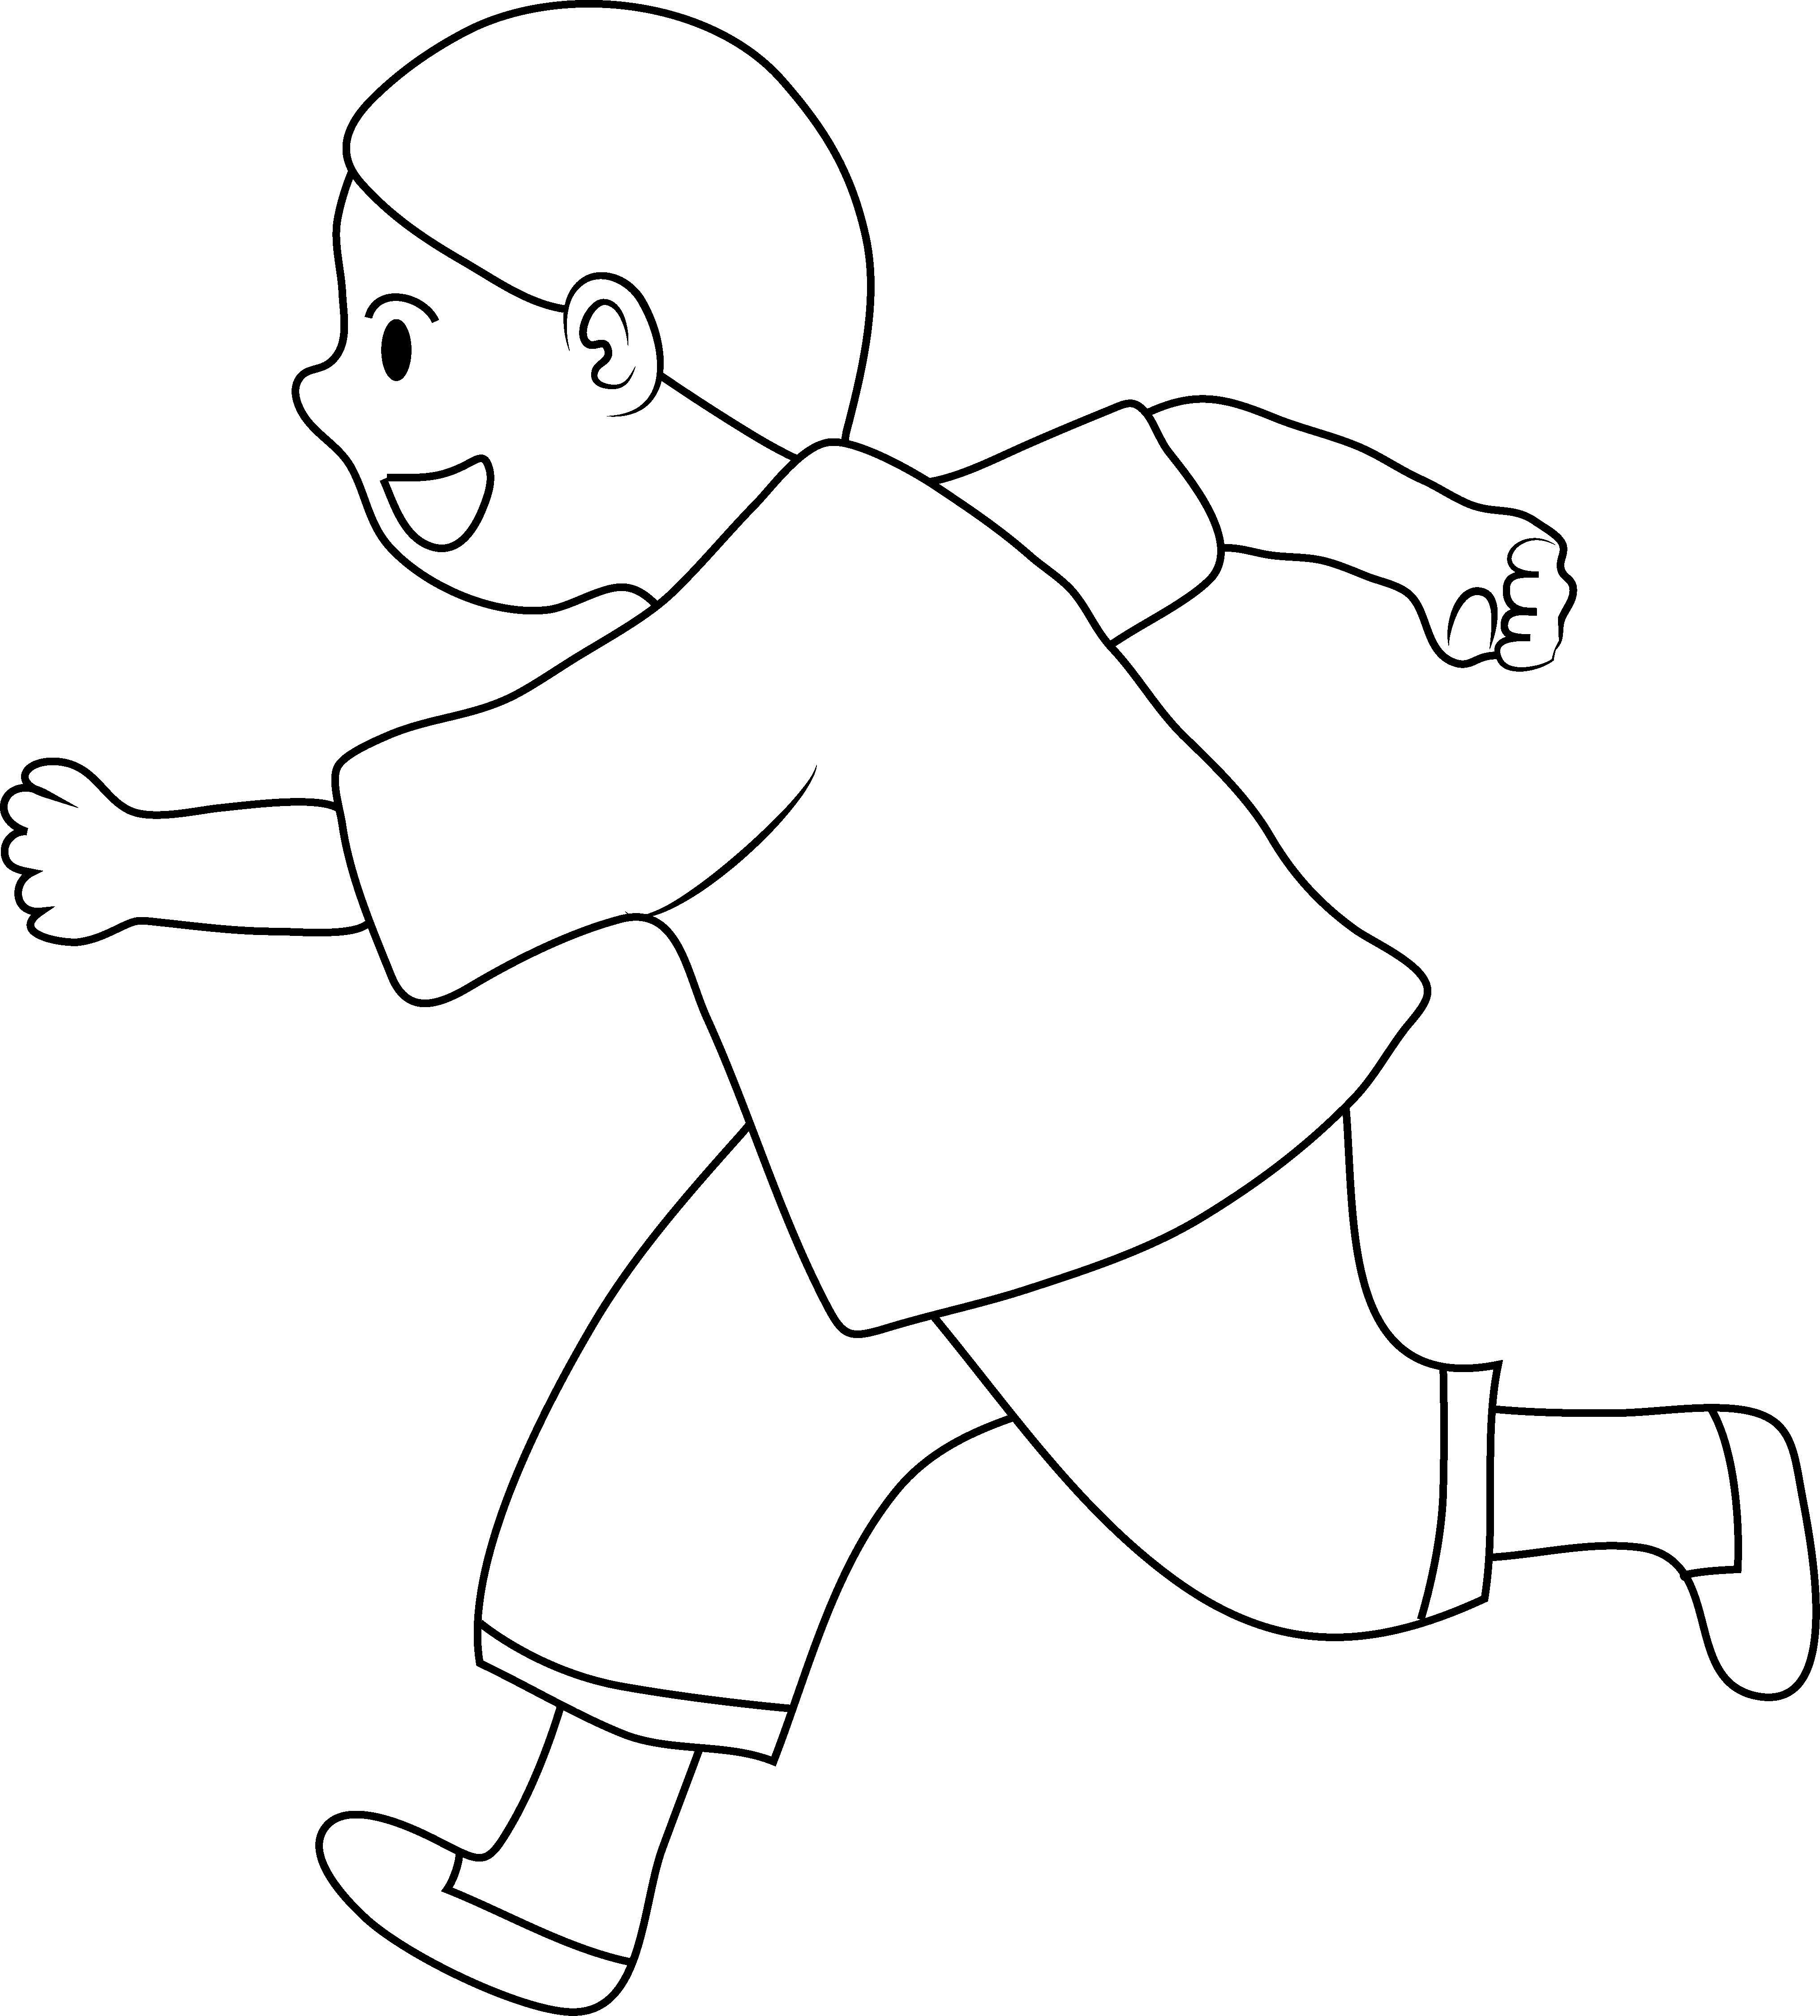 picture library Hops clipart black and white. Run png transparent images